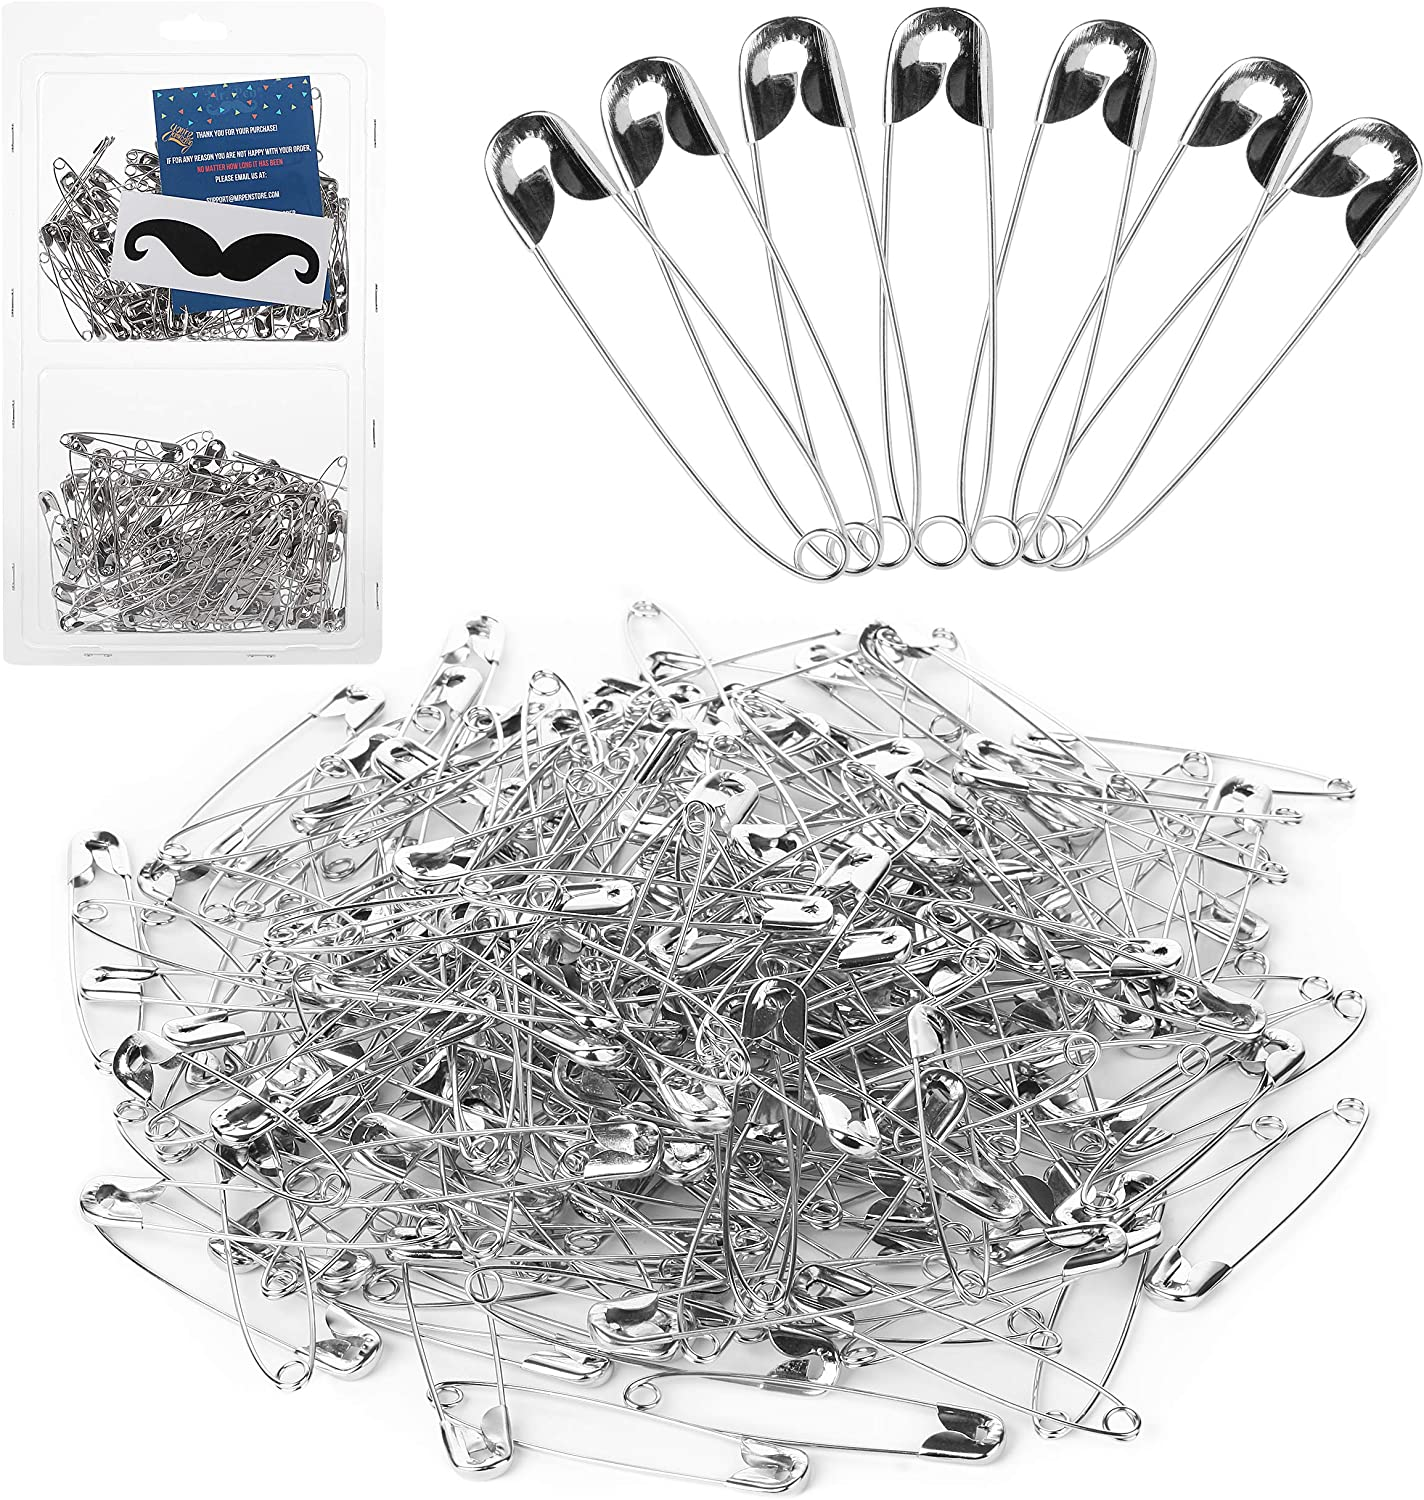 100 Safety Pinlarge safety pin safety pin 5cm long100 safety pins safety pin 100